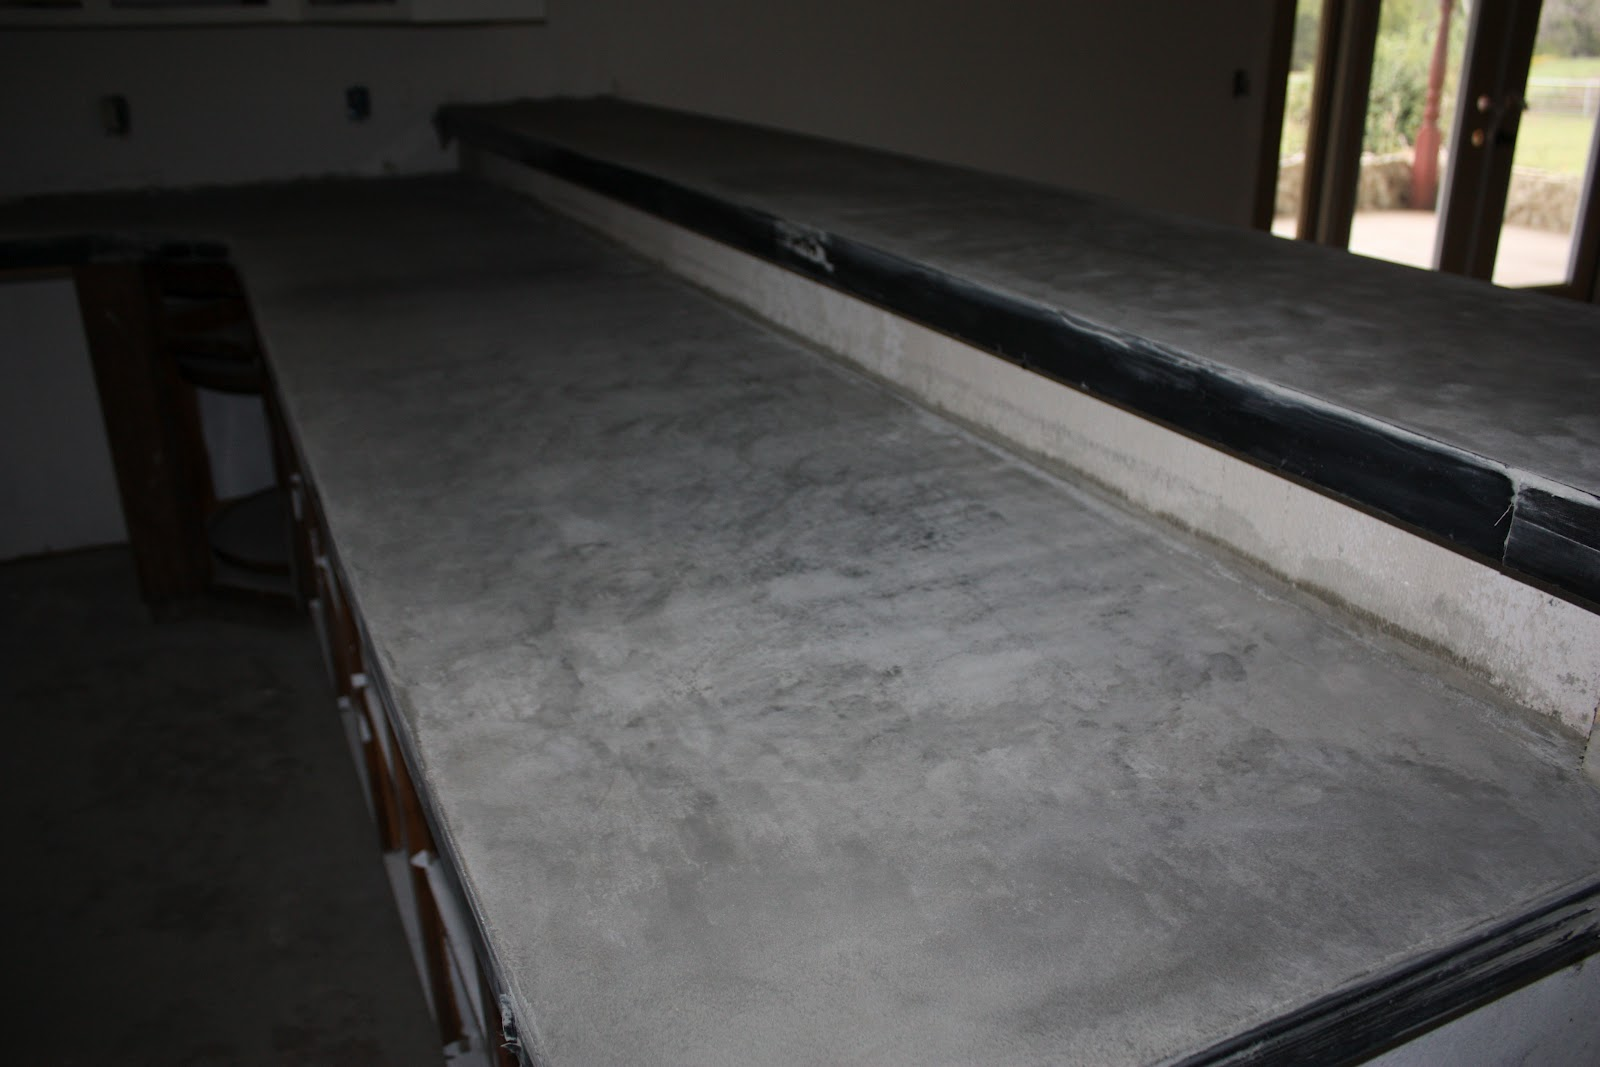 How Much For Concrete Countertops My Grandmother 39s House Concrete Countertops Step 2